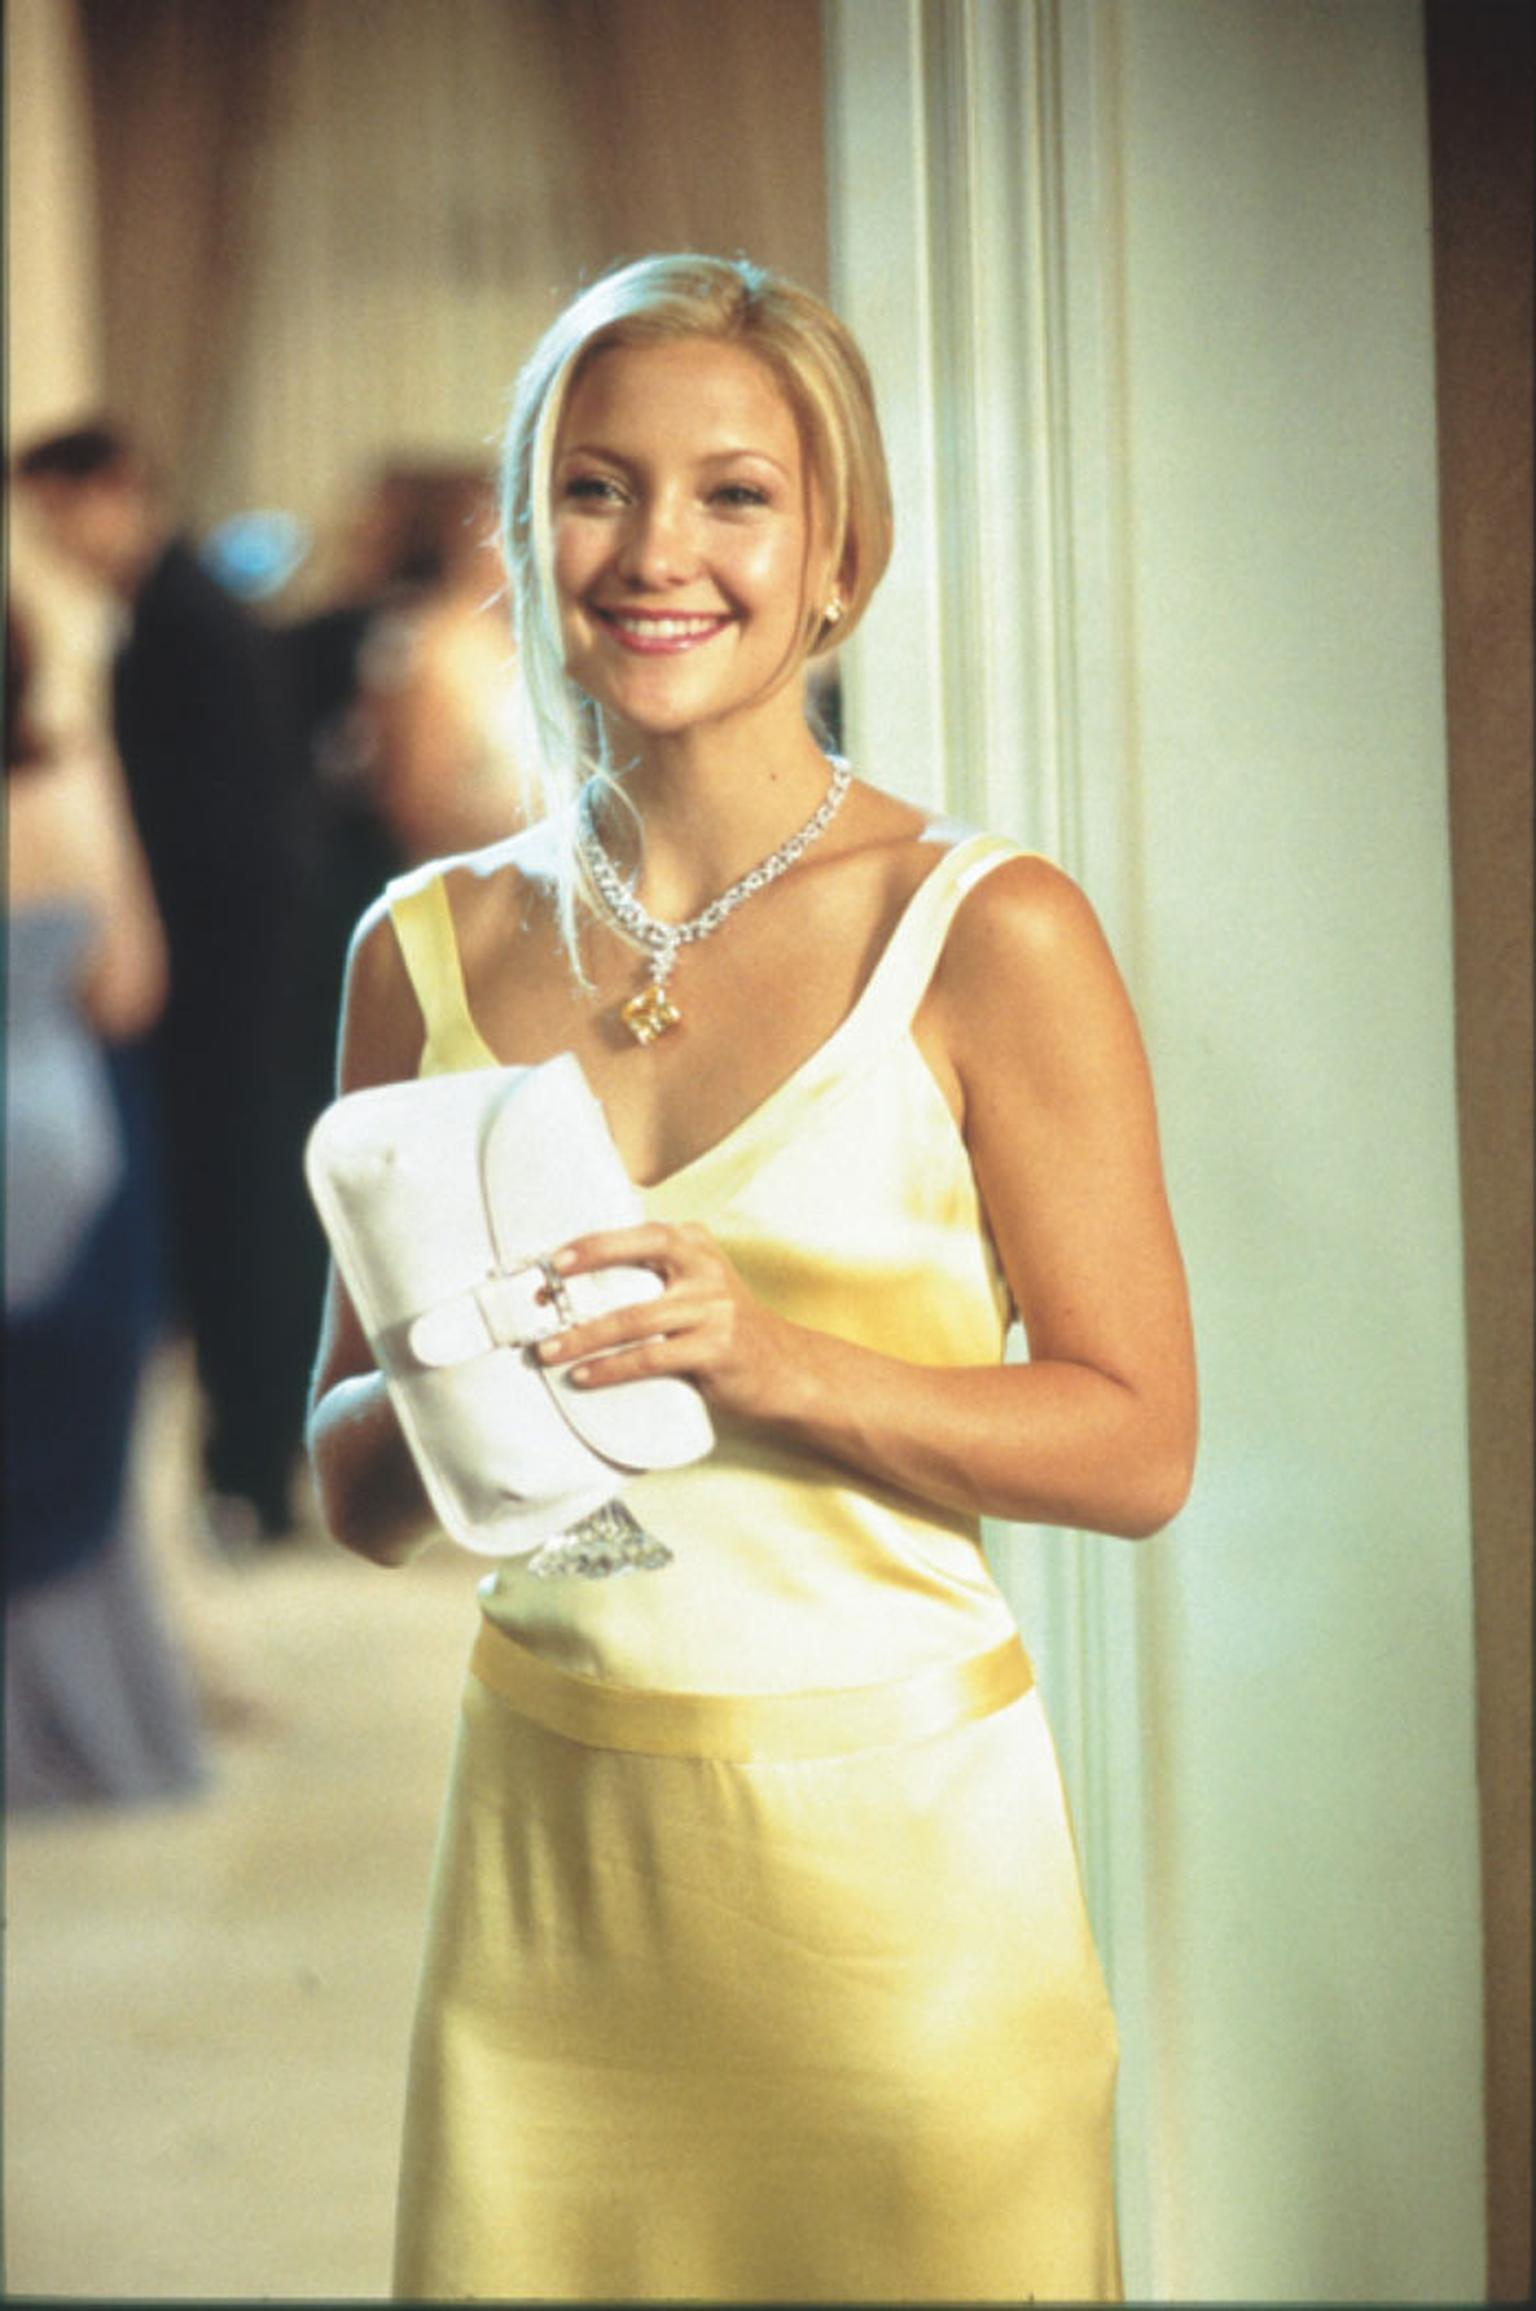 Kate-Hudson-HOW-TO-LOSE-A-GUY-IN-10-DAYS---KATE-HUDSON---MOVIE-STILL